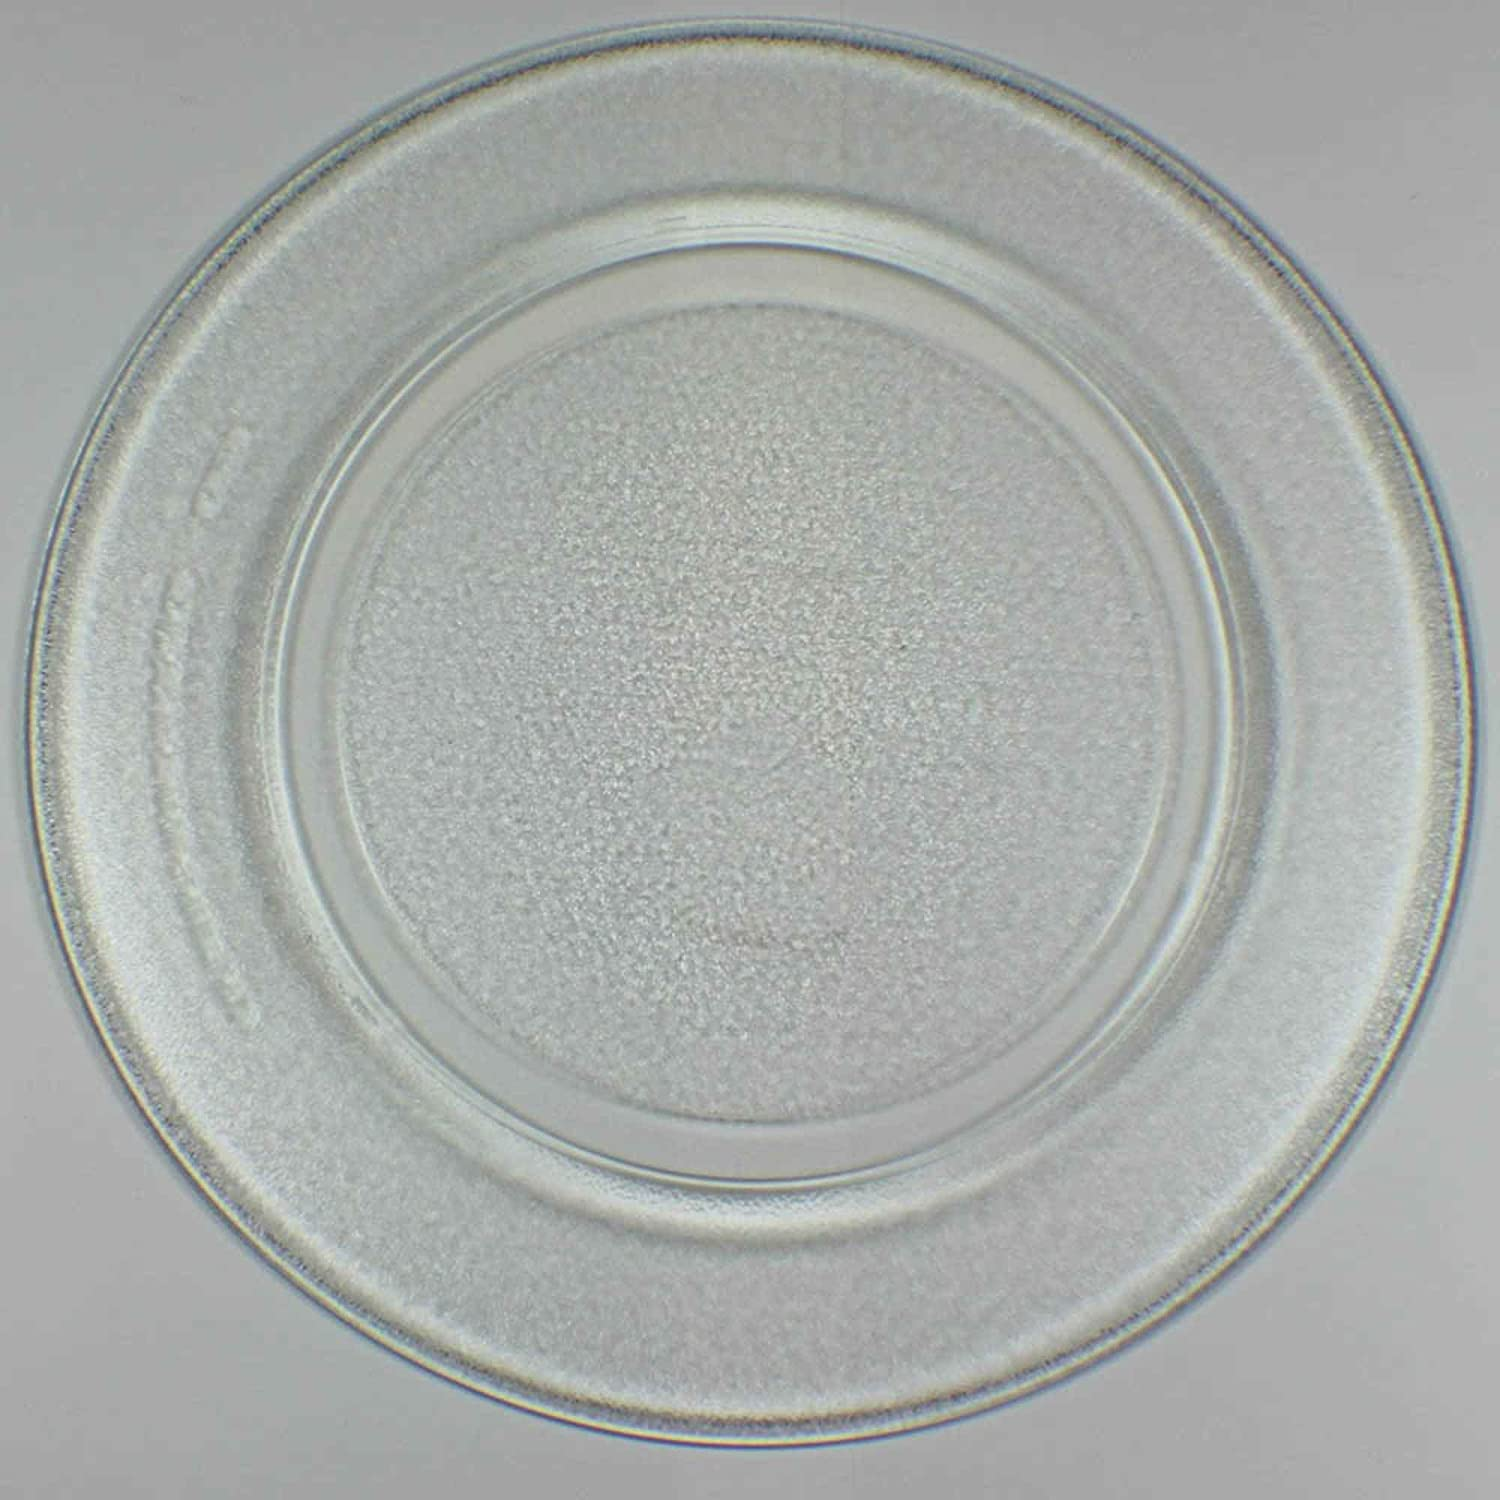 "GE Microwave Glass Turntable Plate / Tray 14 1/8 "" WB49X10135"